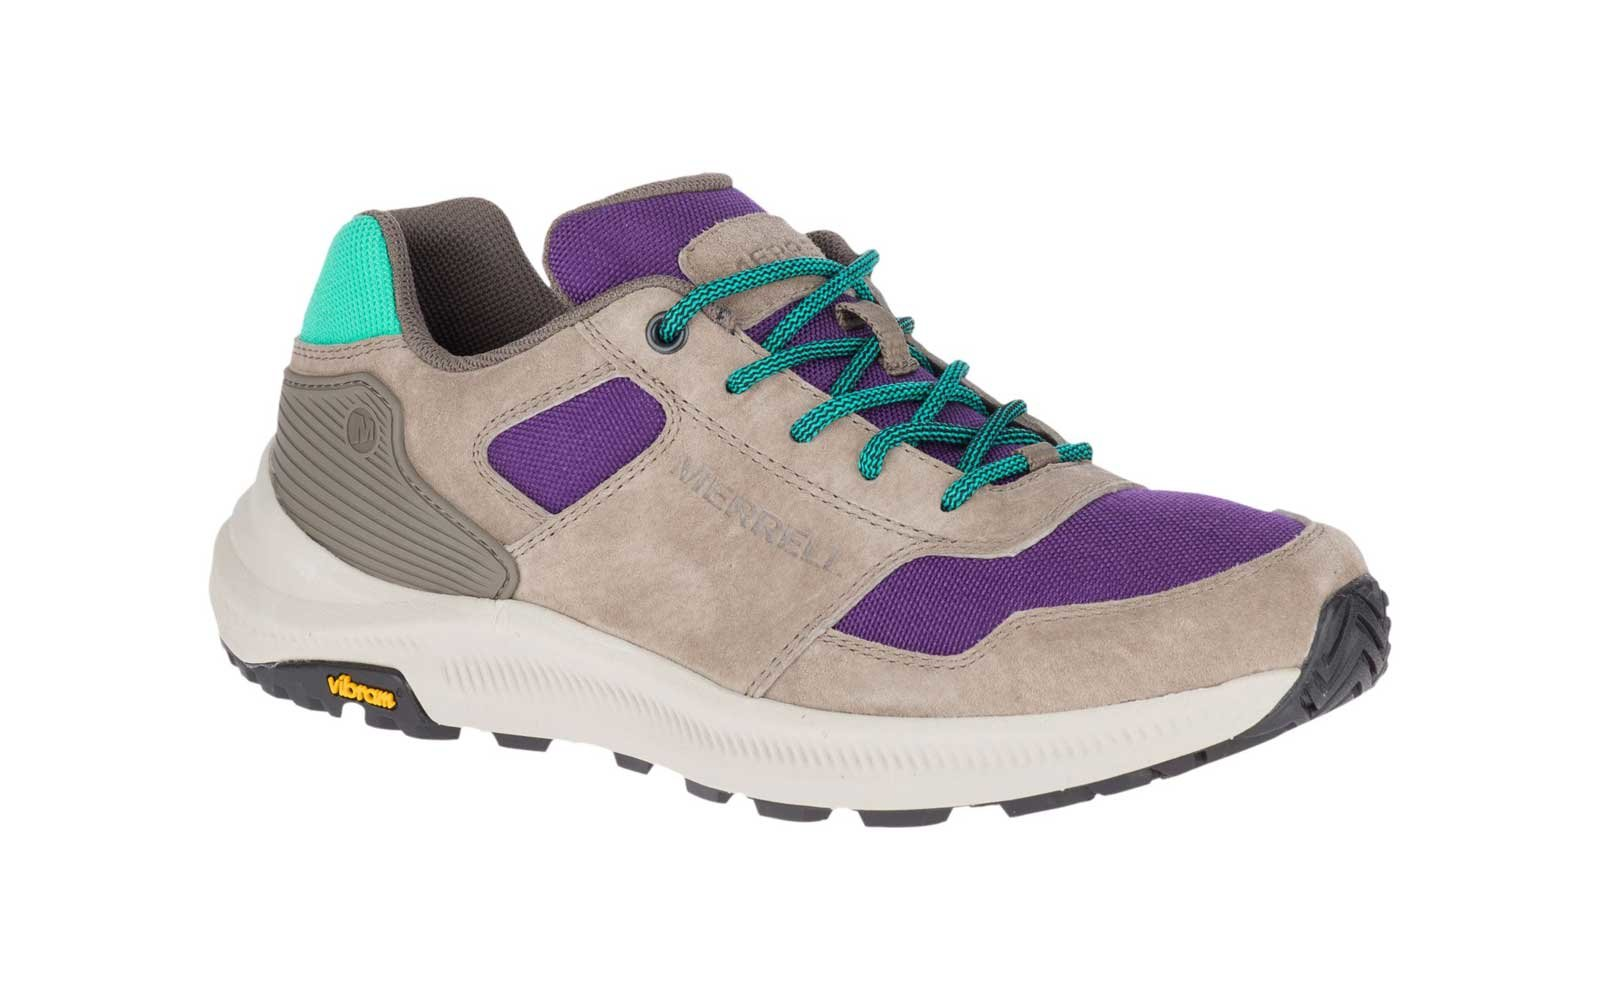 cute hiking shoes and boots for women